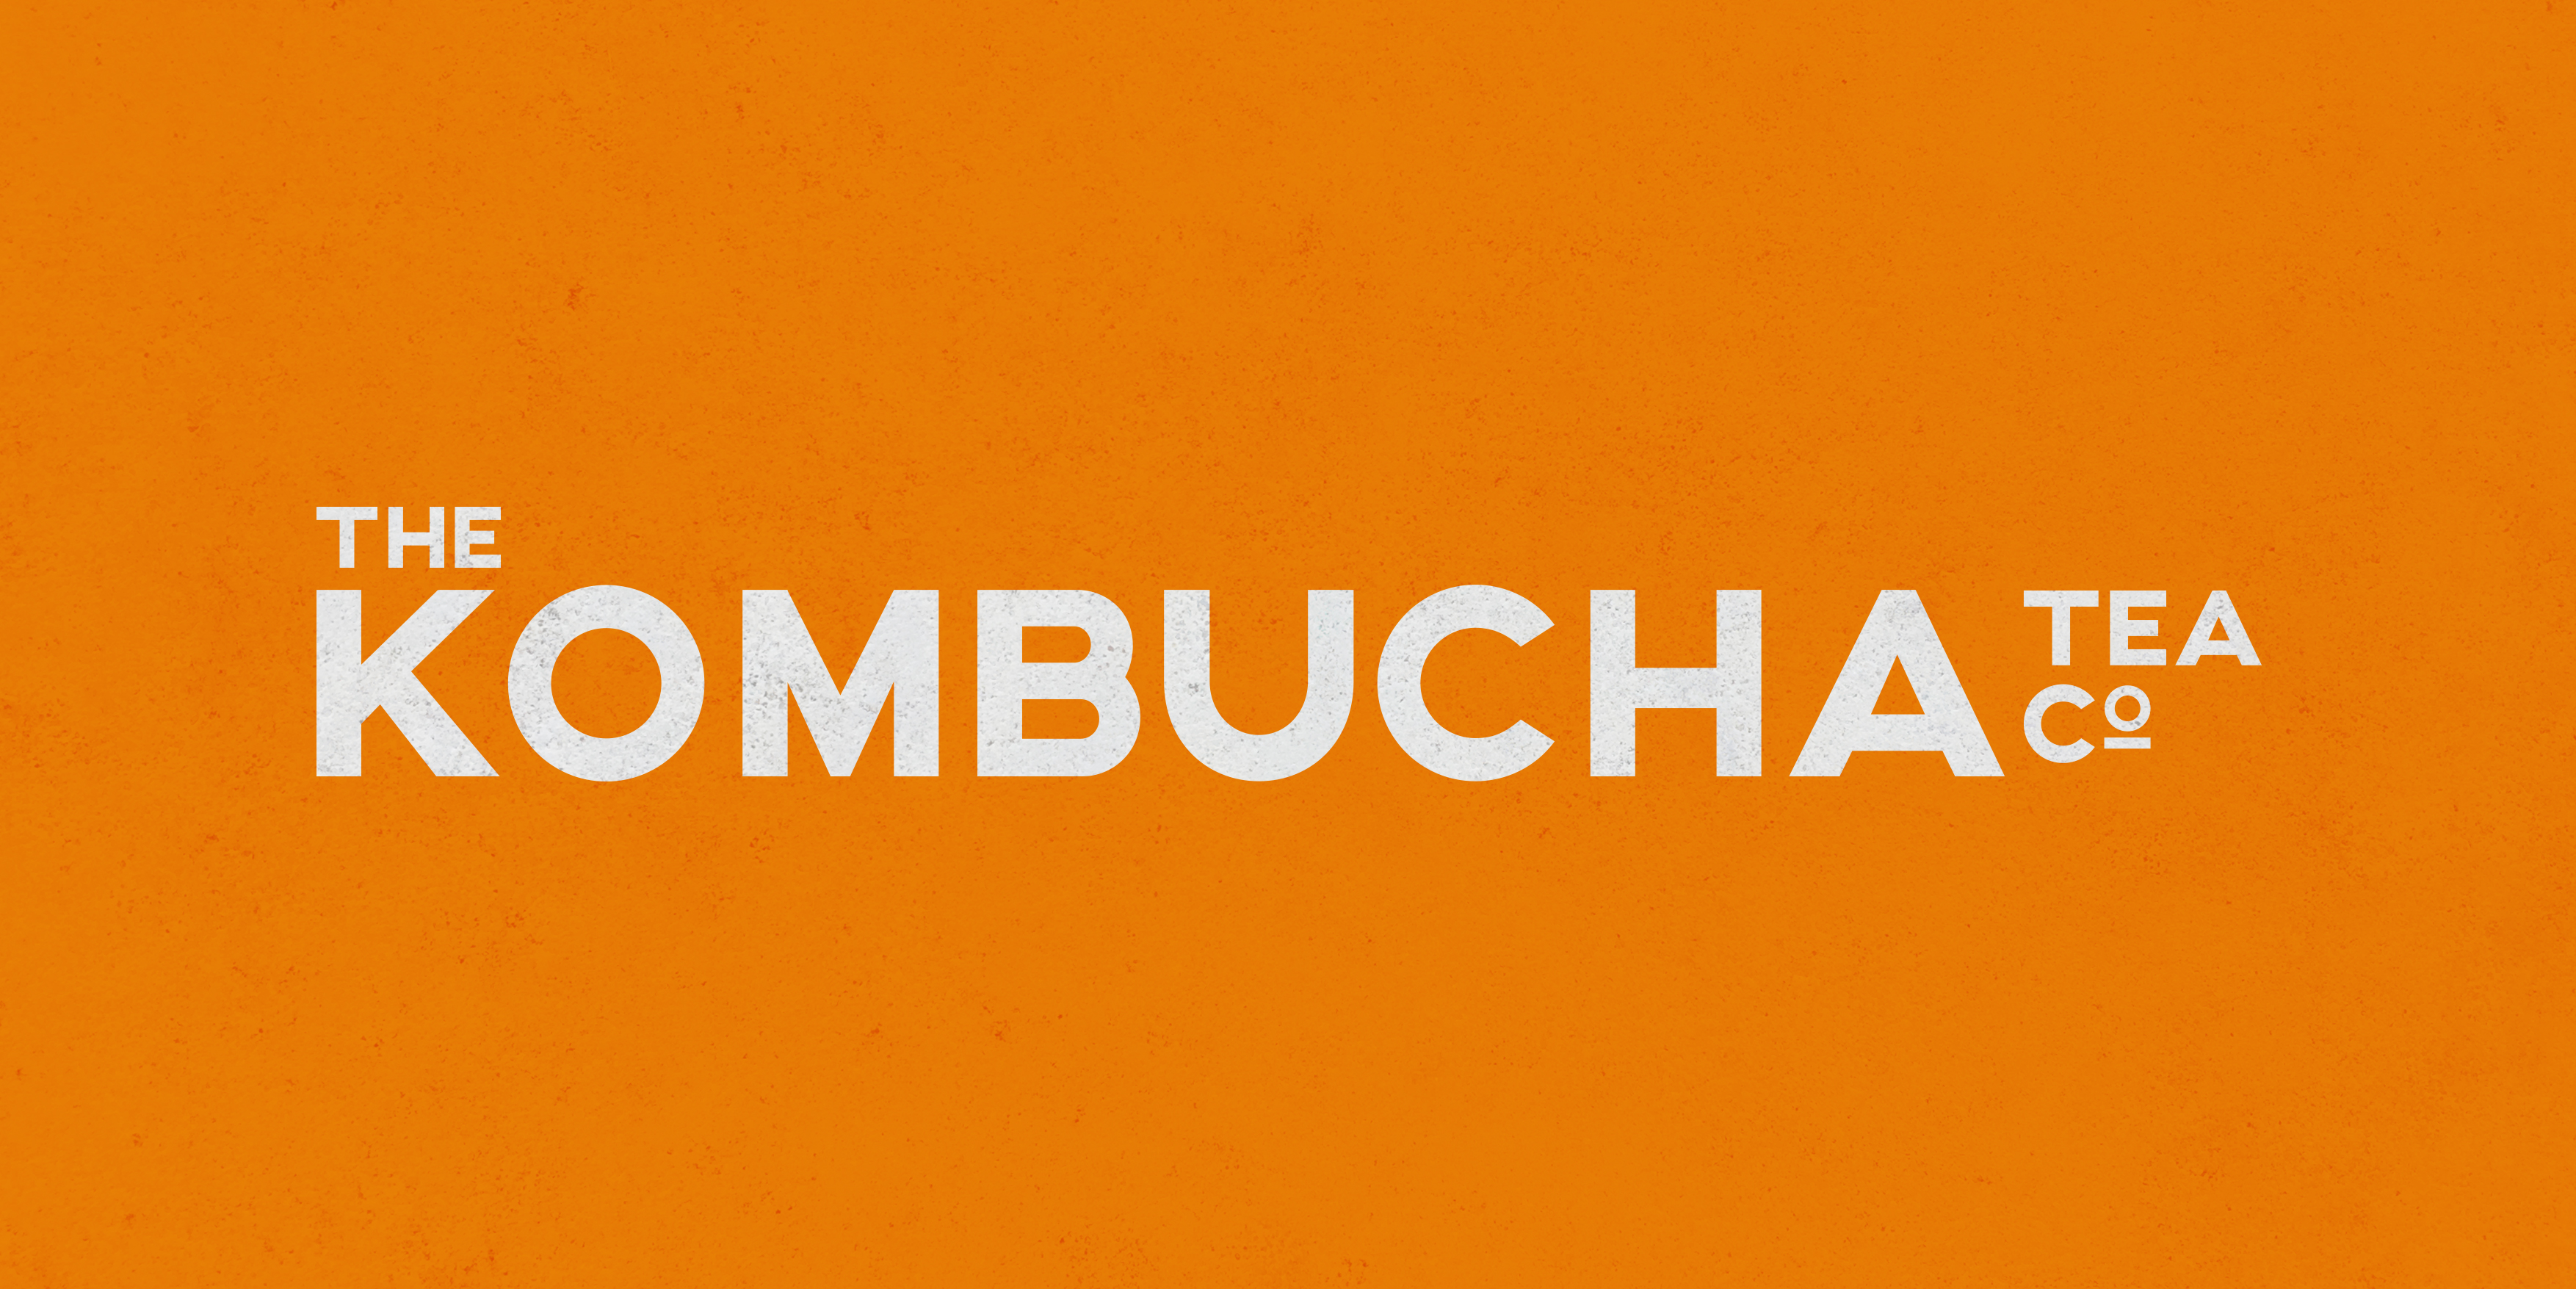 The Kombucha Tea Co branding by Toast Food